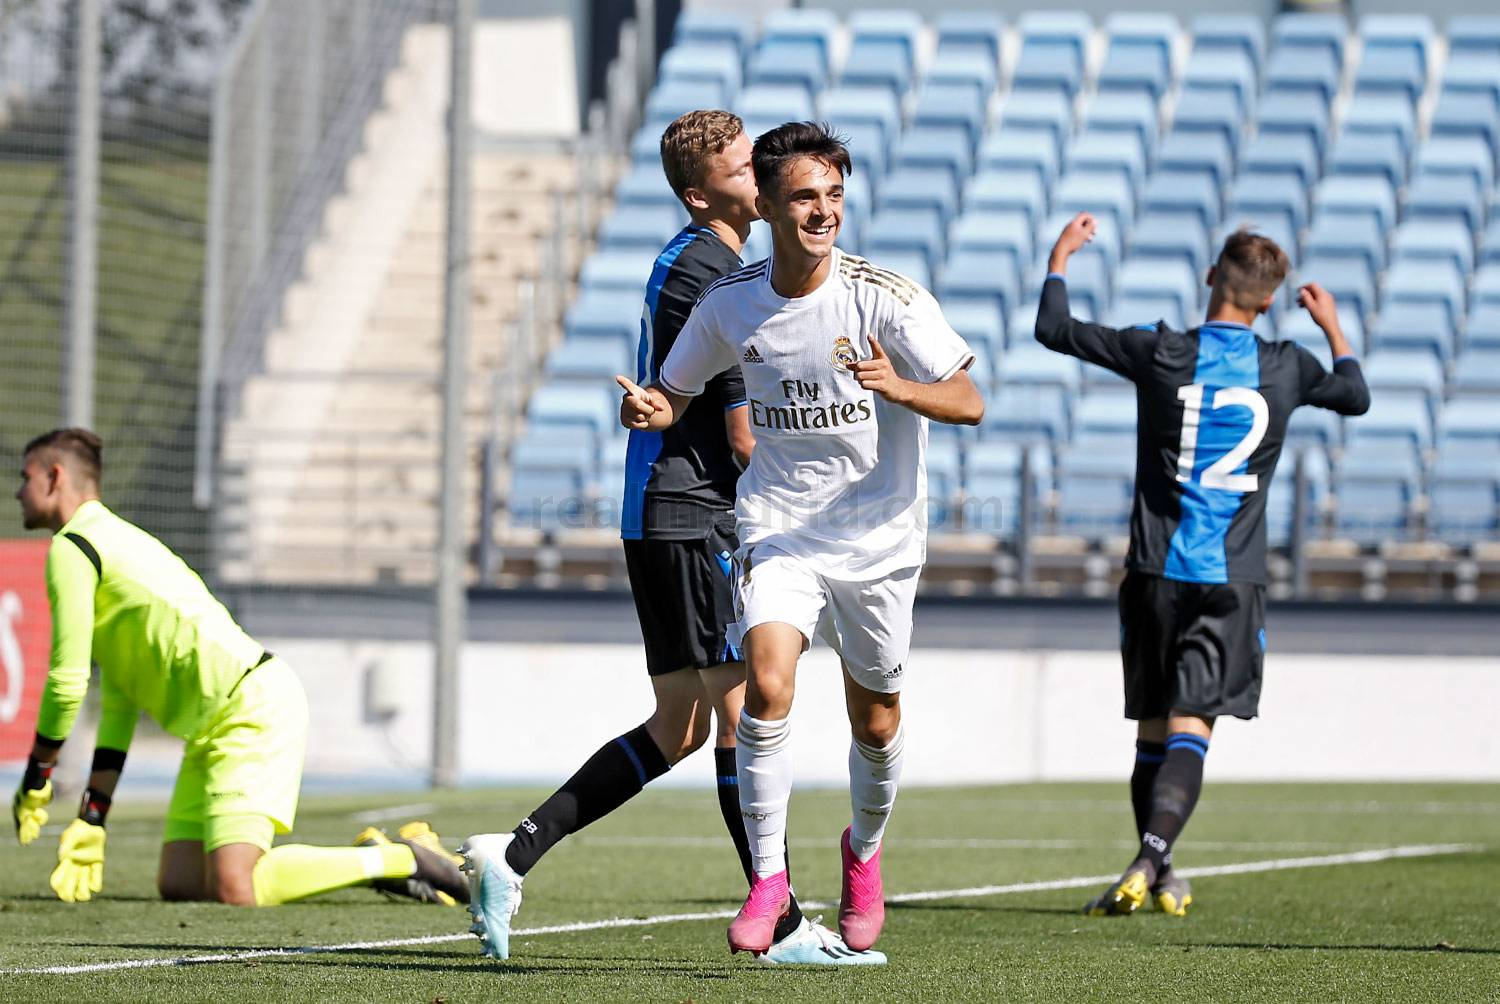 Real Madrid - Juvenil A - Brujas - 01-10-2019